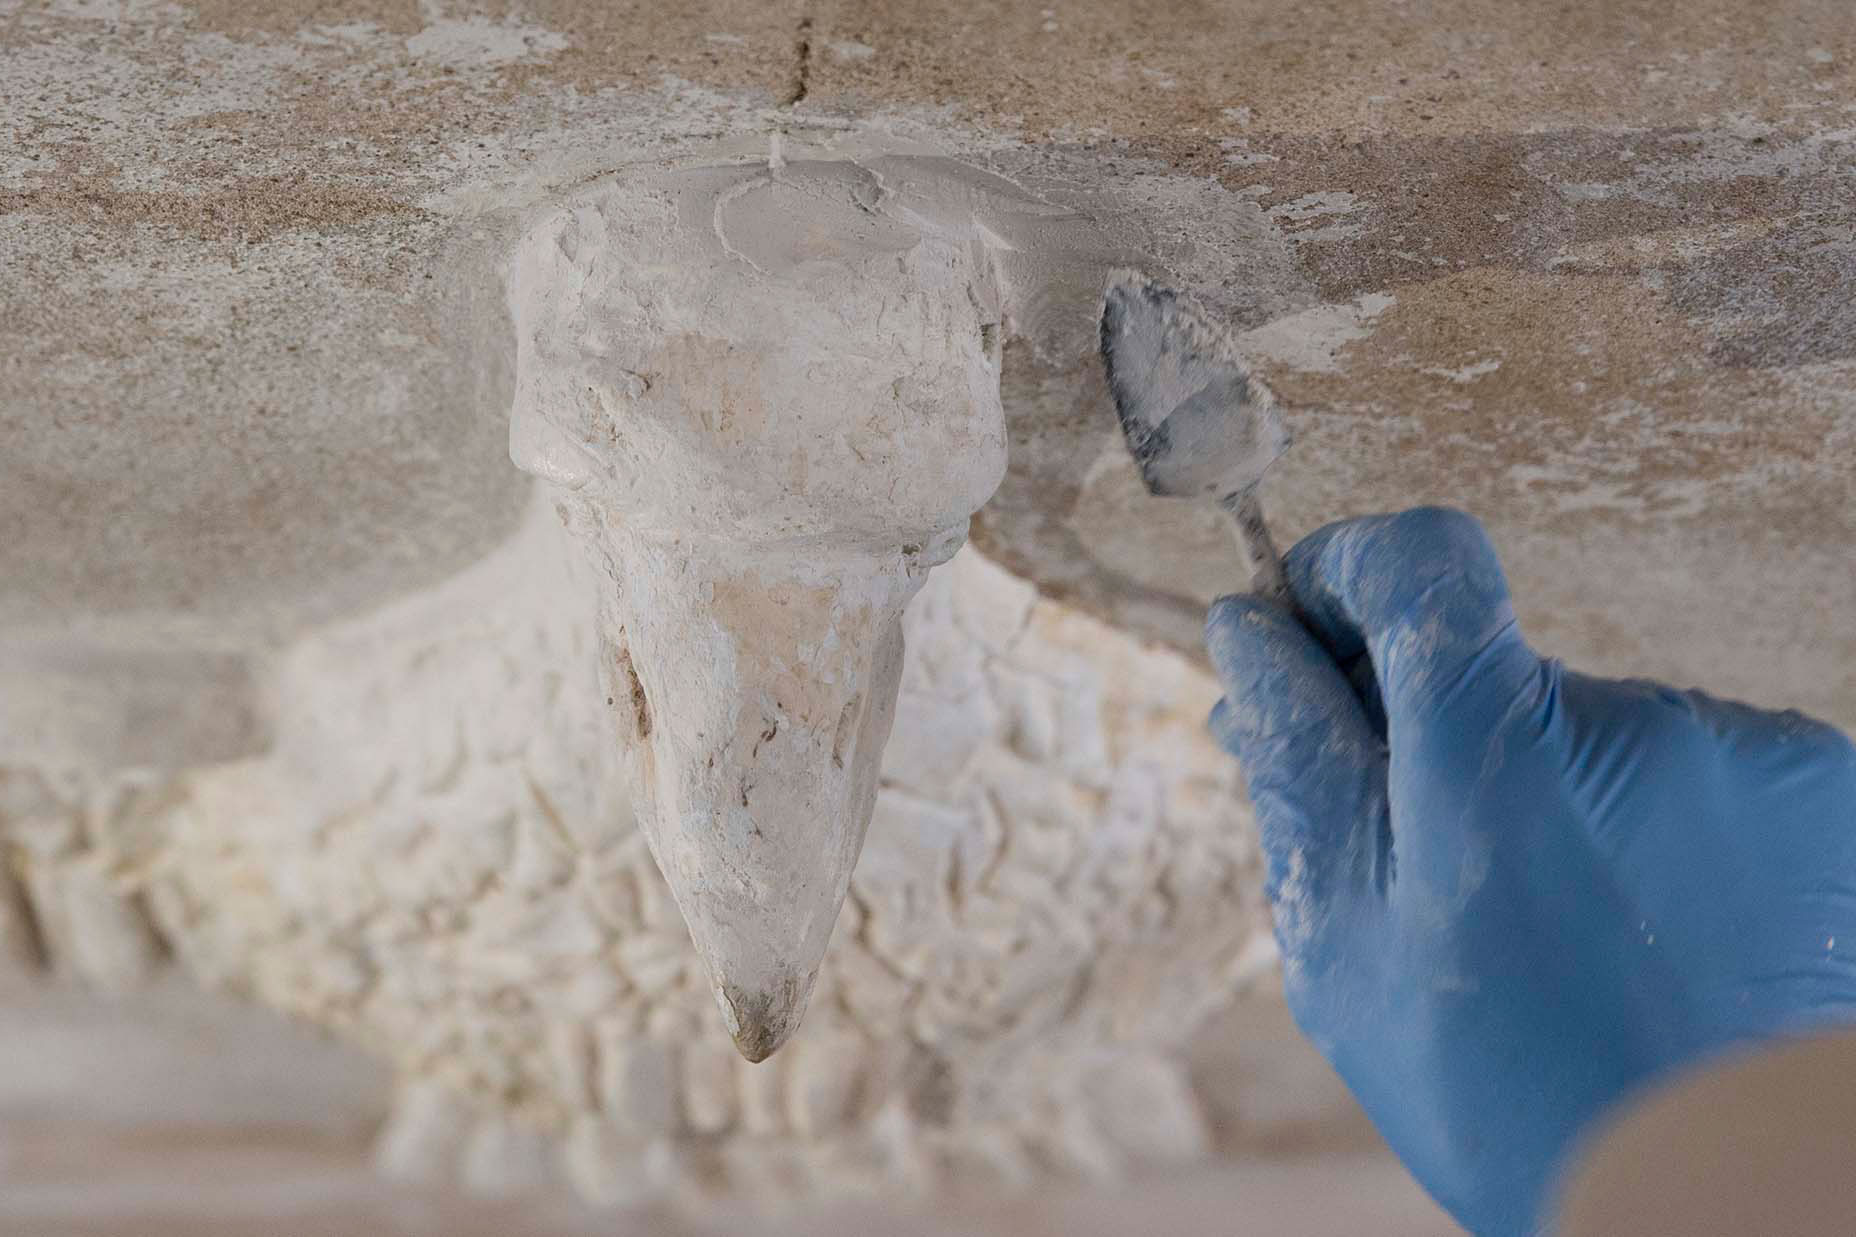 Master plasterer Noel Bird carefully repairs and preserves the eagle on the ceiling of the Rotunda's south portico.